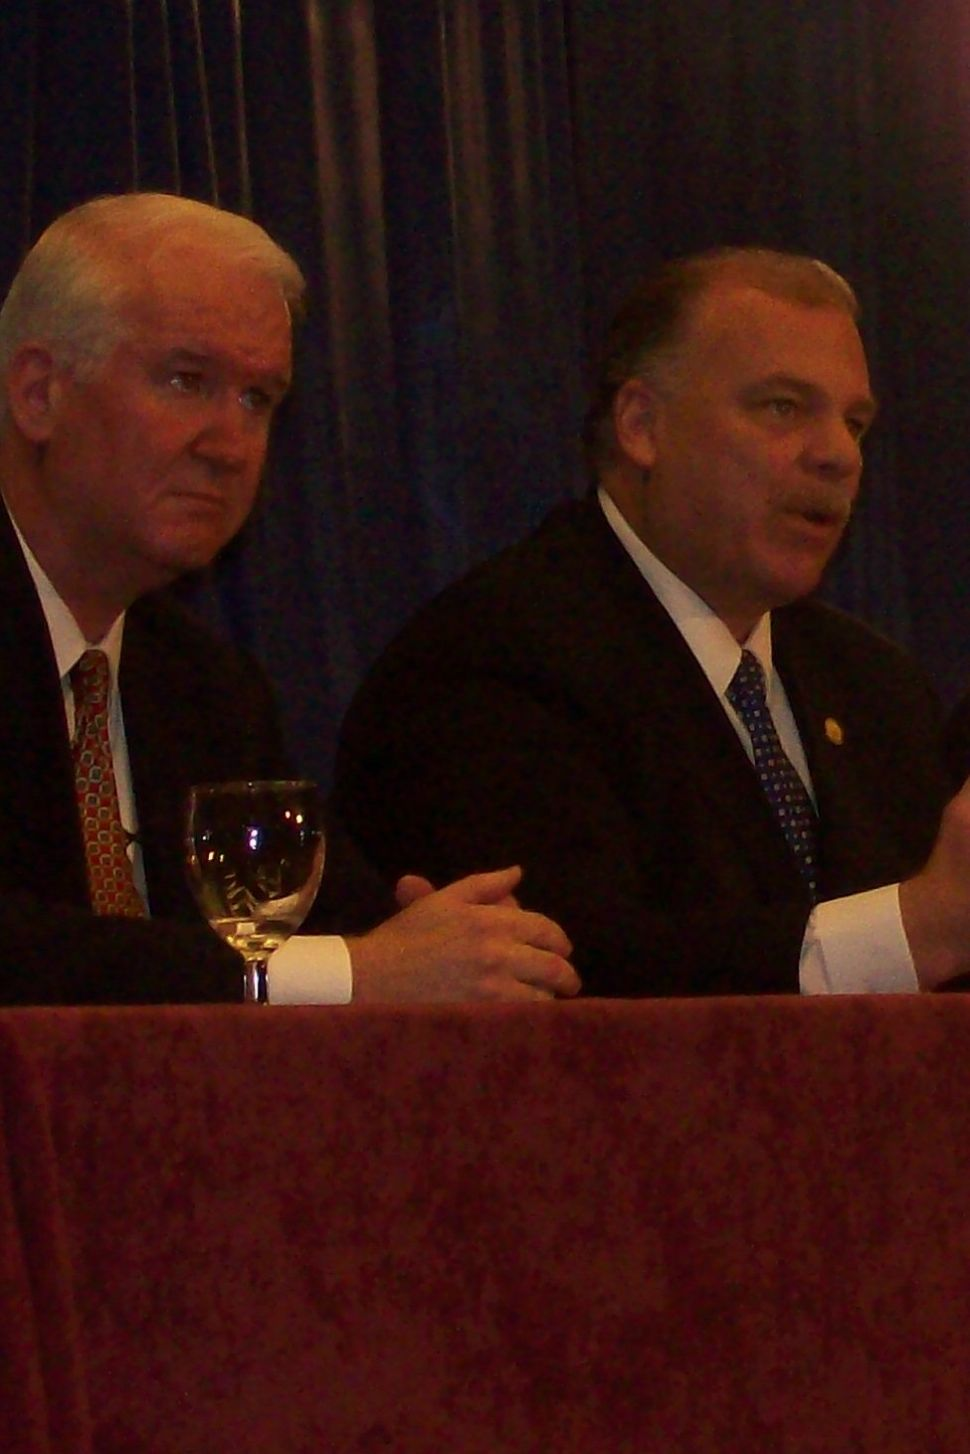 Sweeney: economy is the issue now, not marriage equality